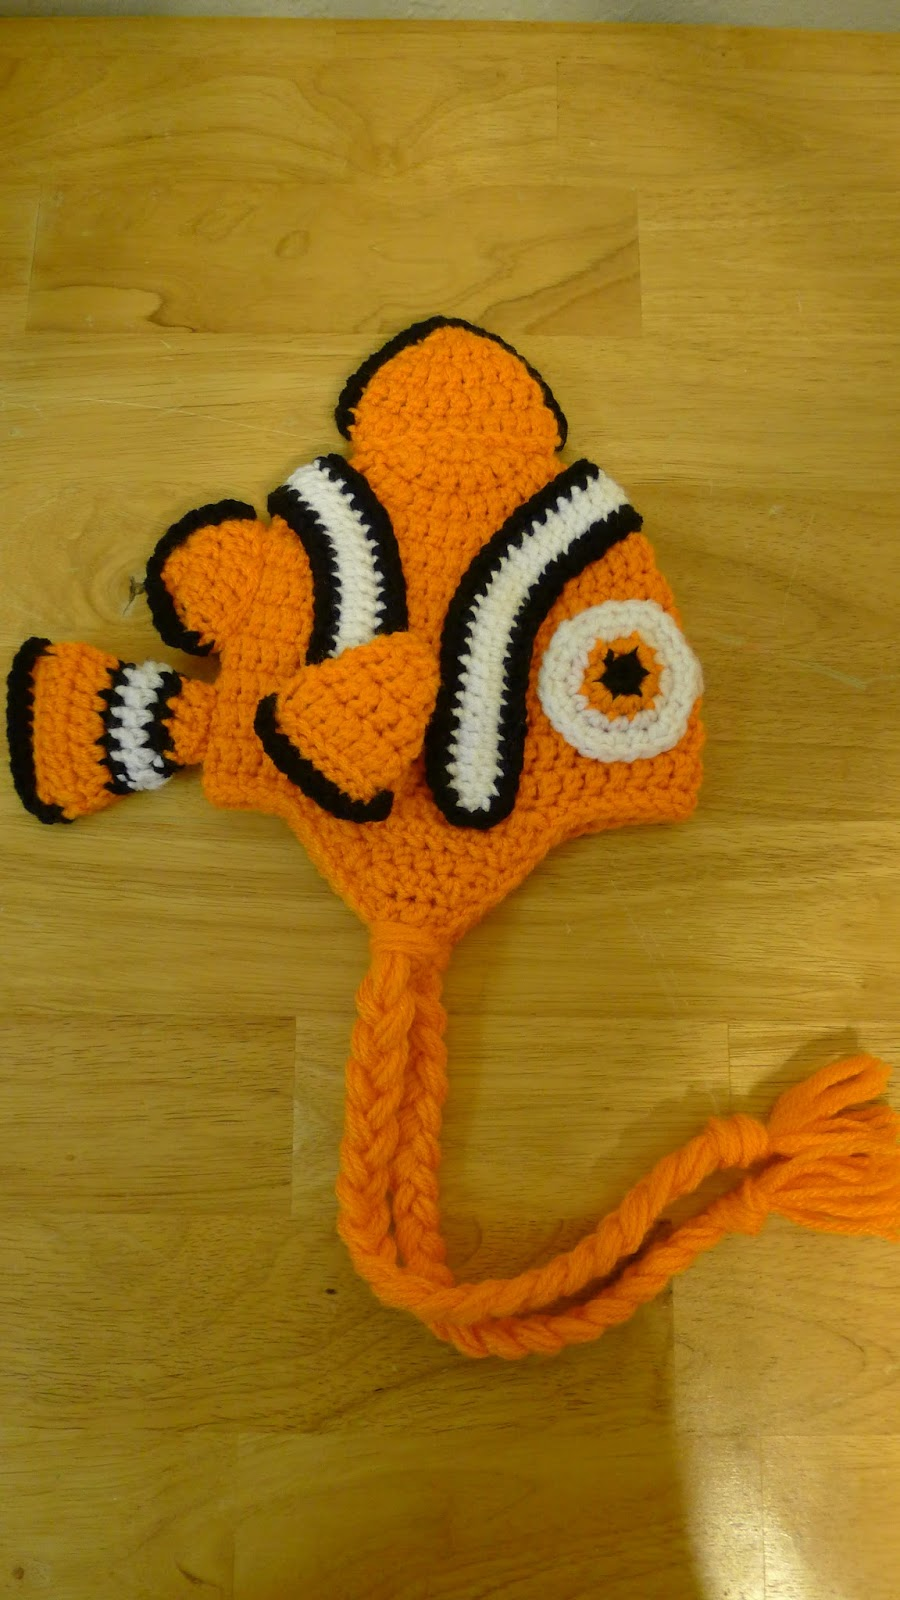 mnopxs2 the blog: Crochet Clownfish Hat